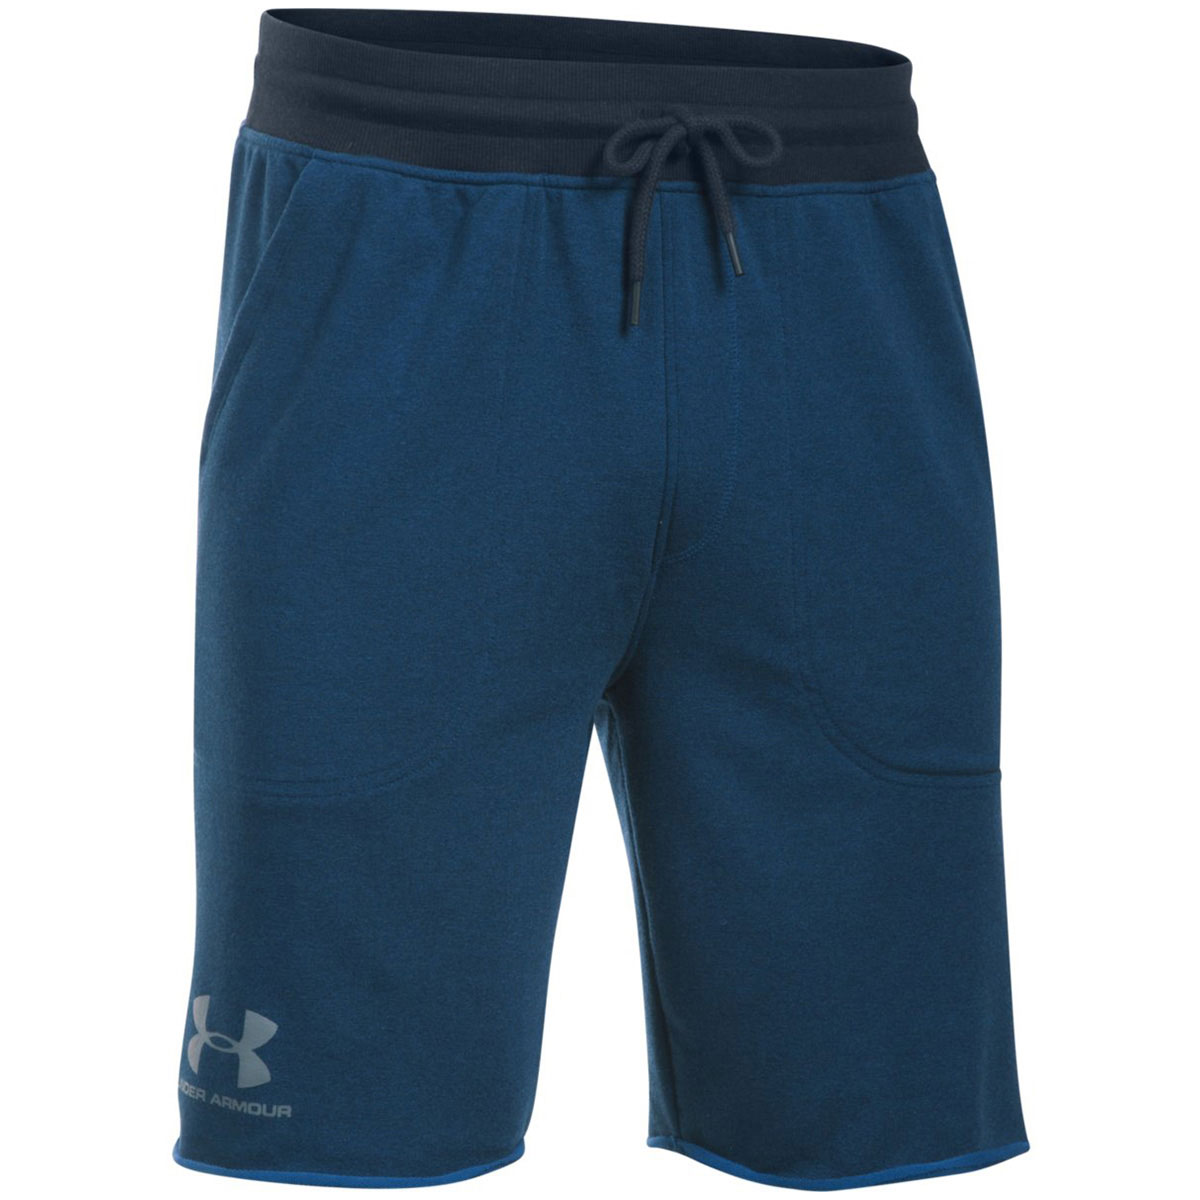 Shop Men's Fleece Shorts at Eastbay. If you want style and comfort combined, check out our collection of men's fleece shorts, with many styles available! Free Shipping select products.